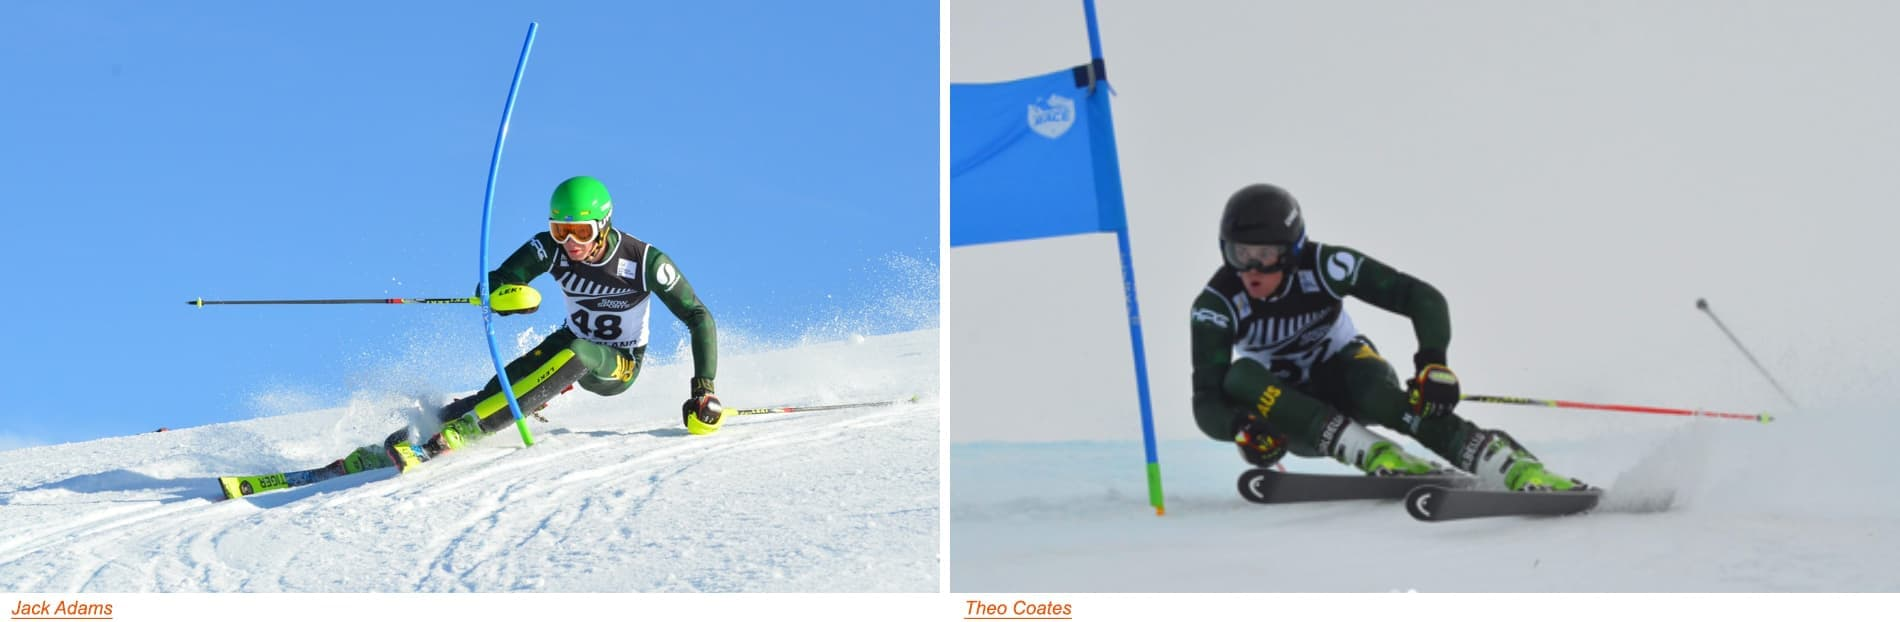 Jack Adams, Theo Coates, Connor Leggett and Shaun Findlay fought the fierce competition in the GS and Slalom events and had some significant results